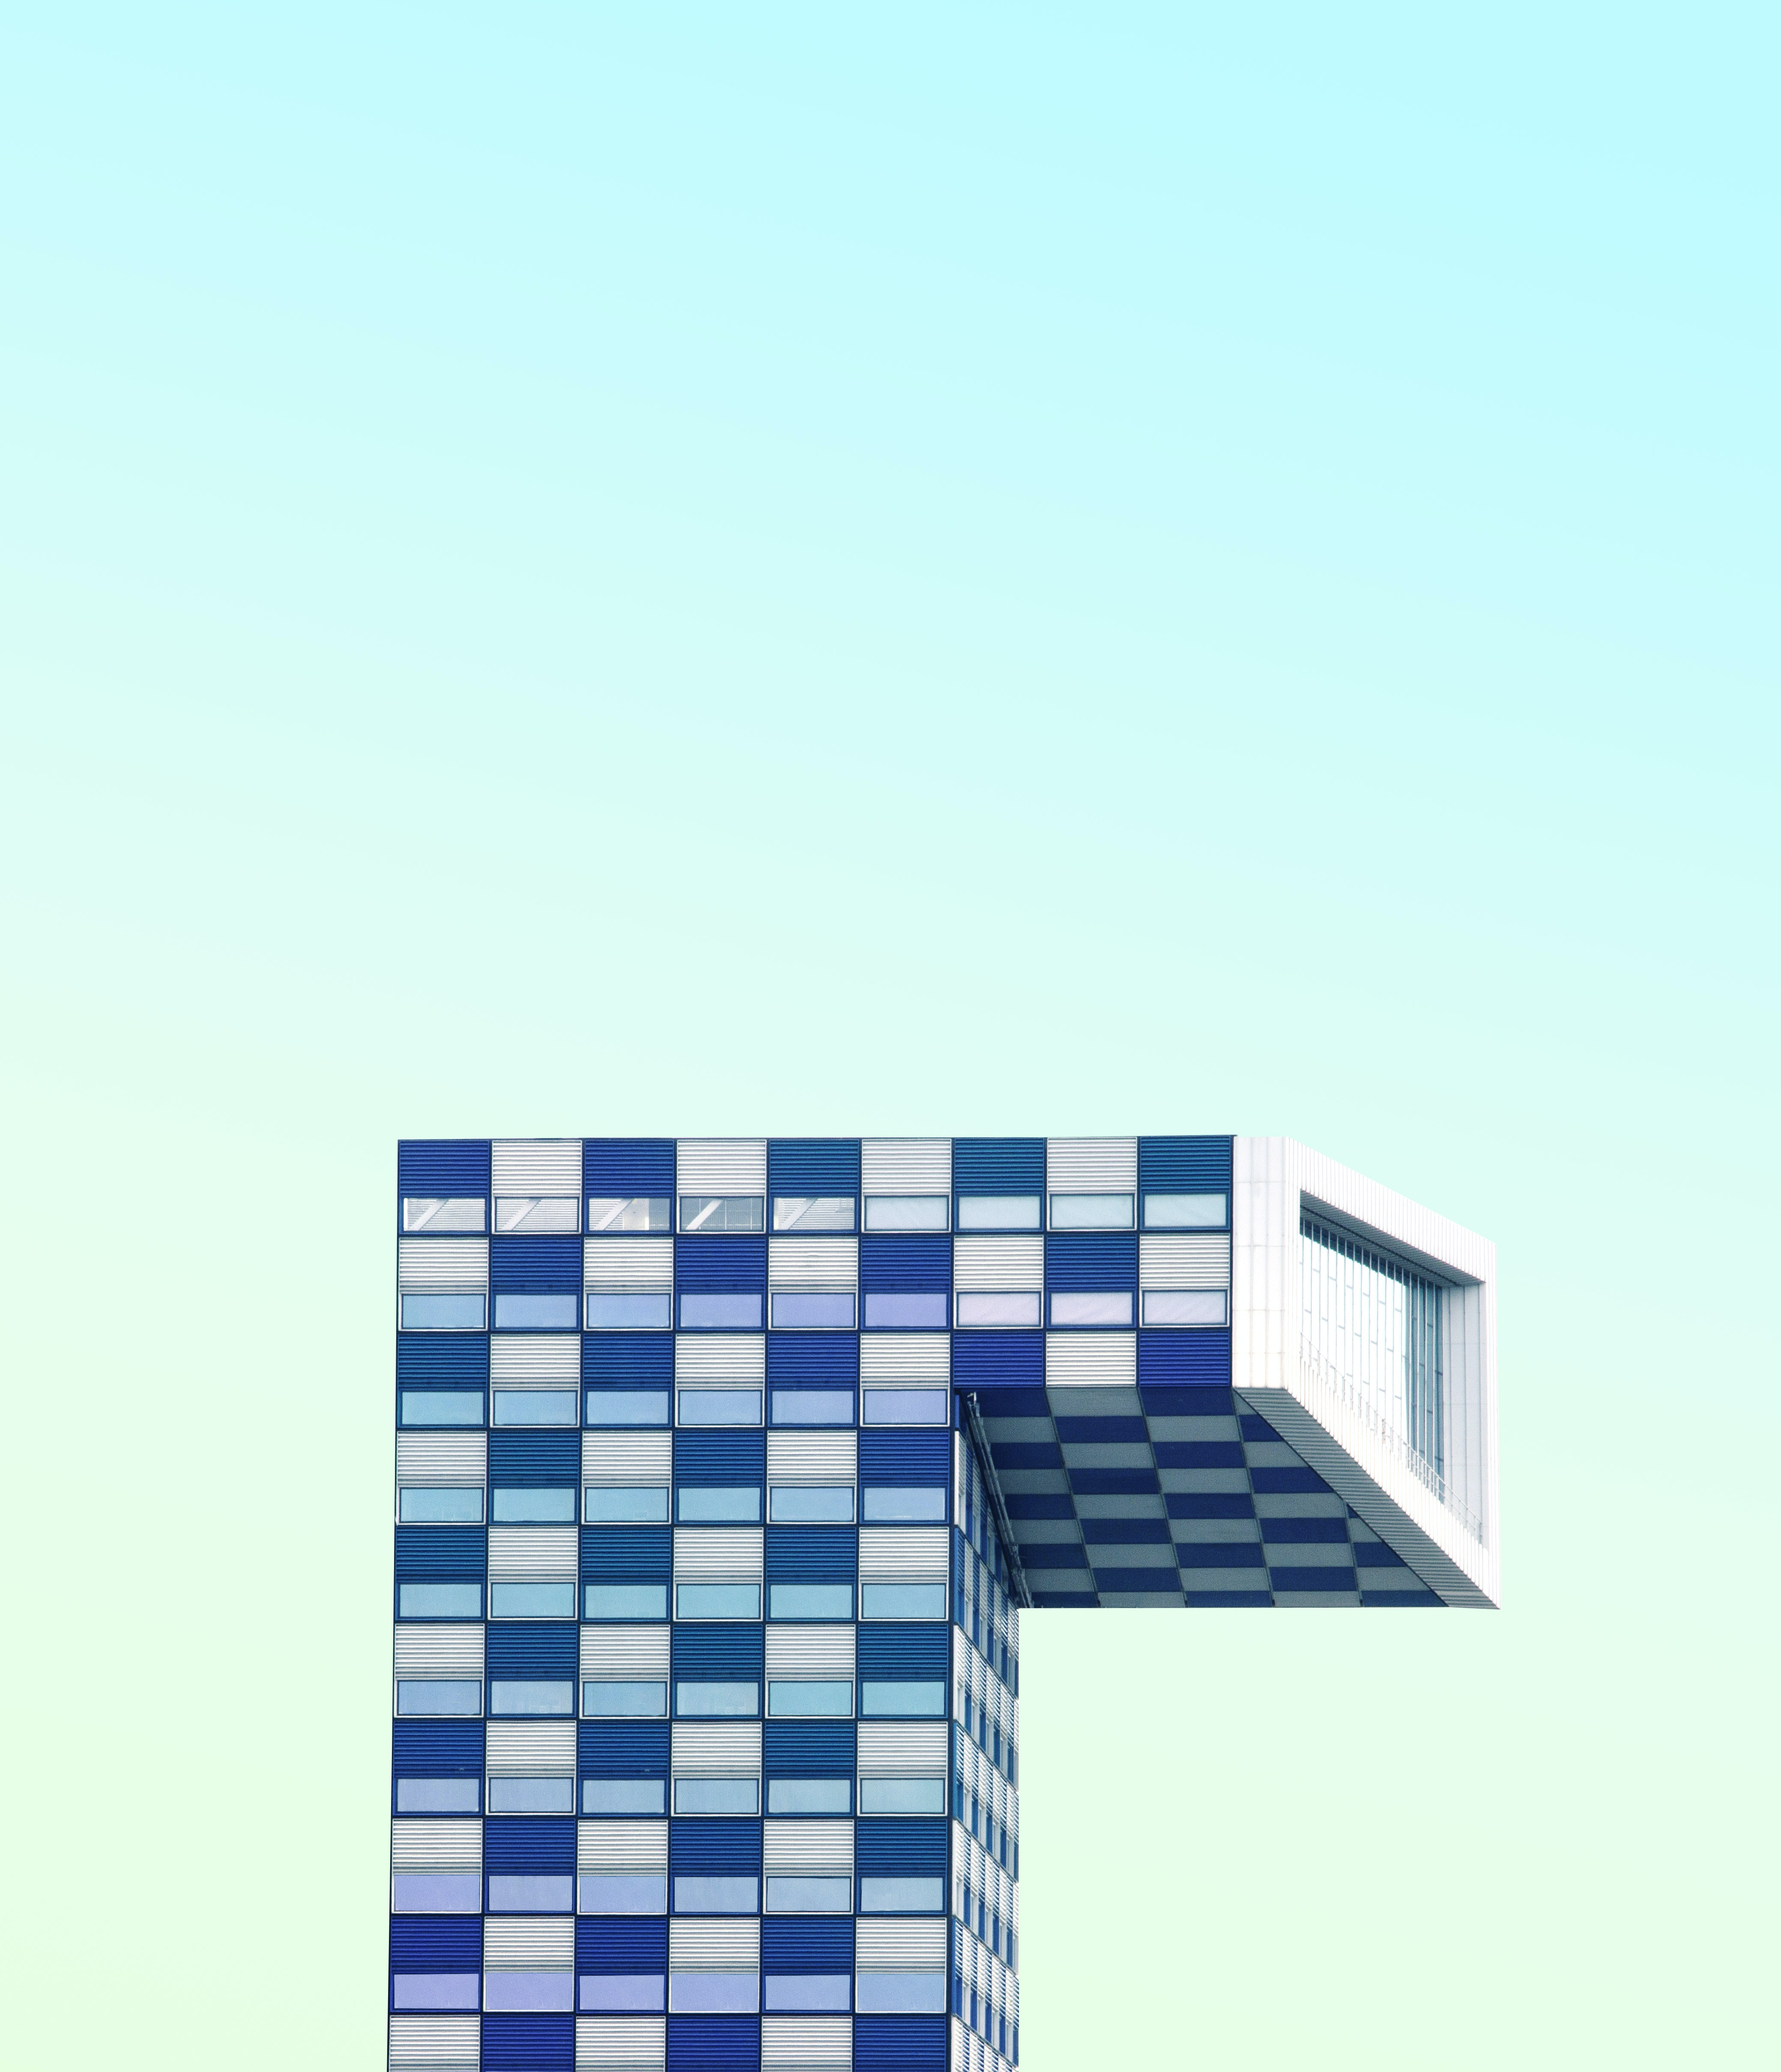 architecutural photography of white and blue painted building